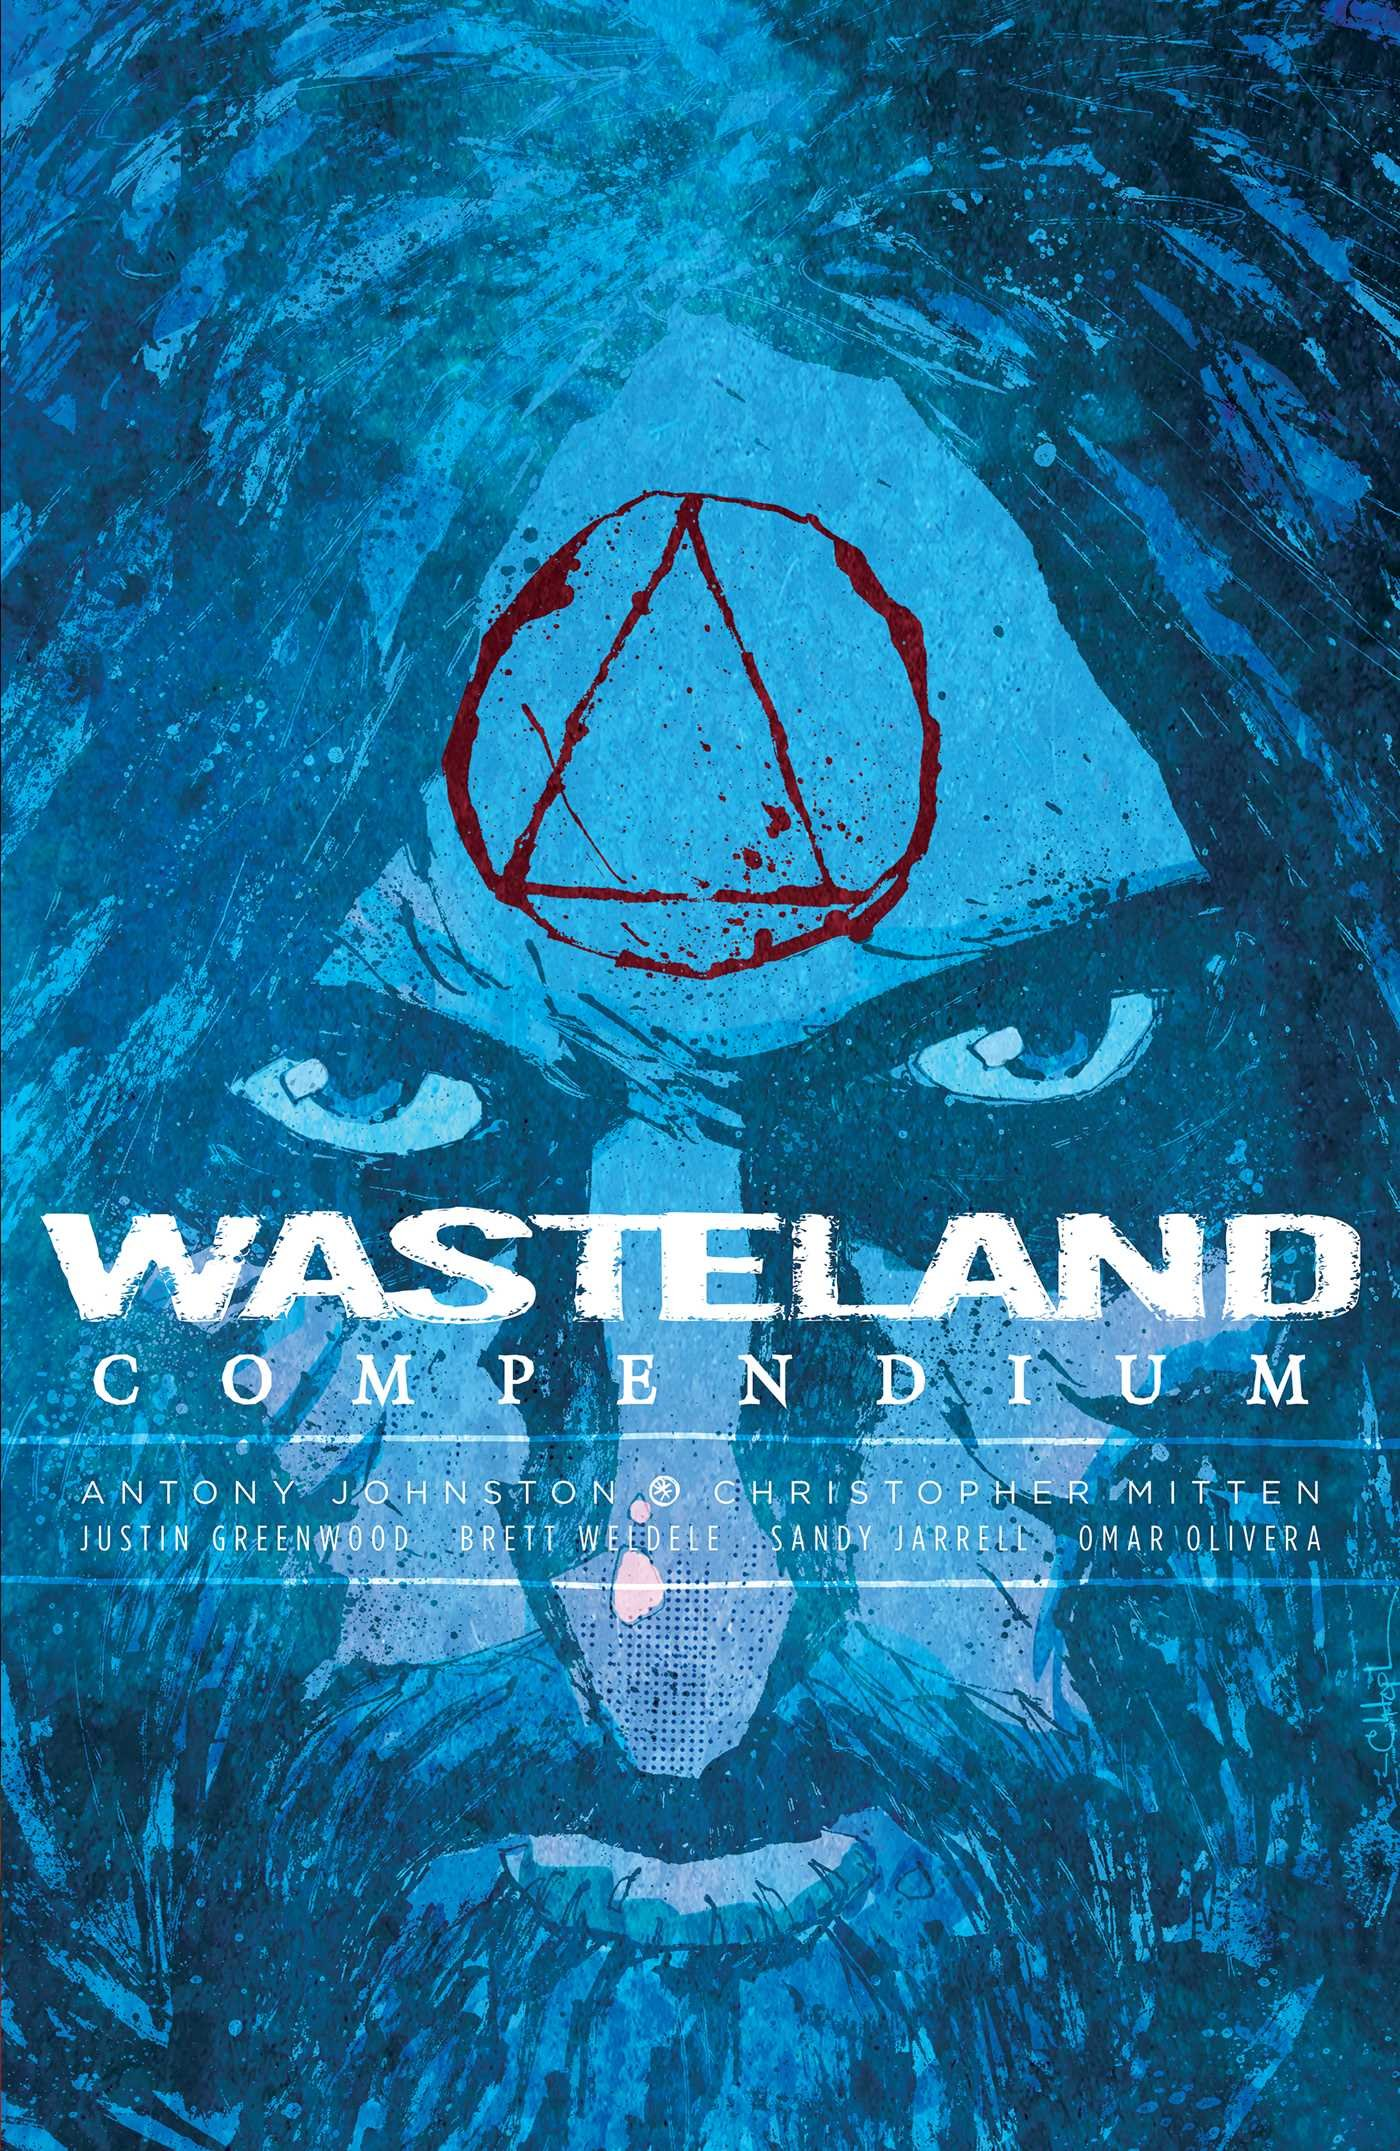 WASTELAND Compendium V2 cover art by Christopher Mitten